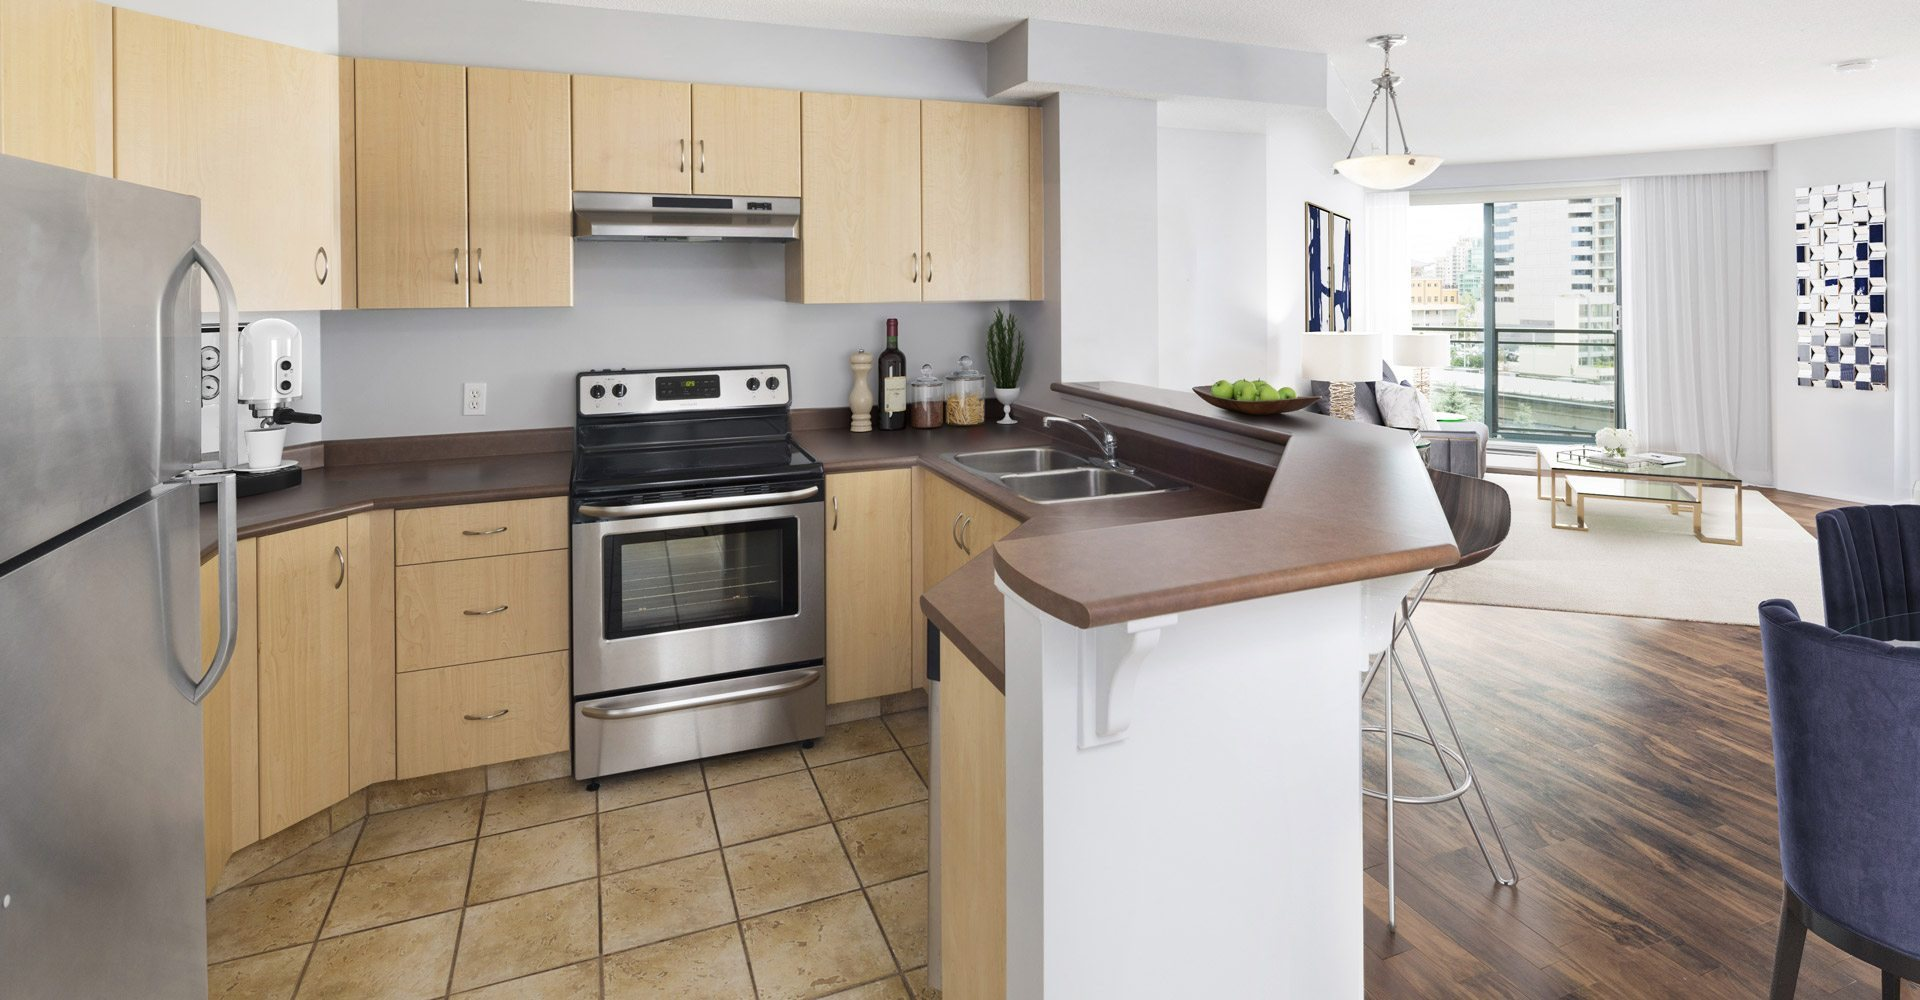 View of open concept kitchen with sink and stove